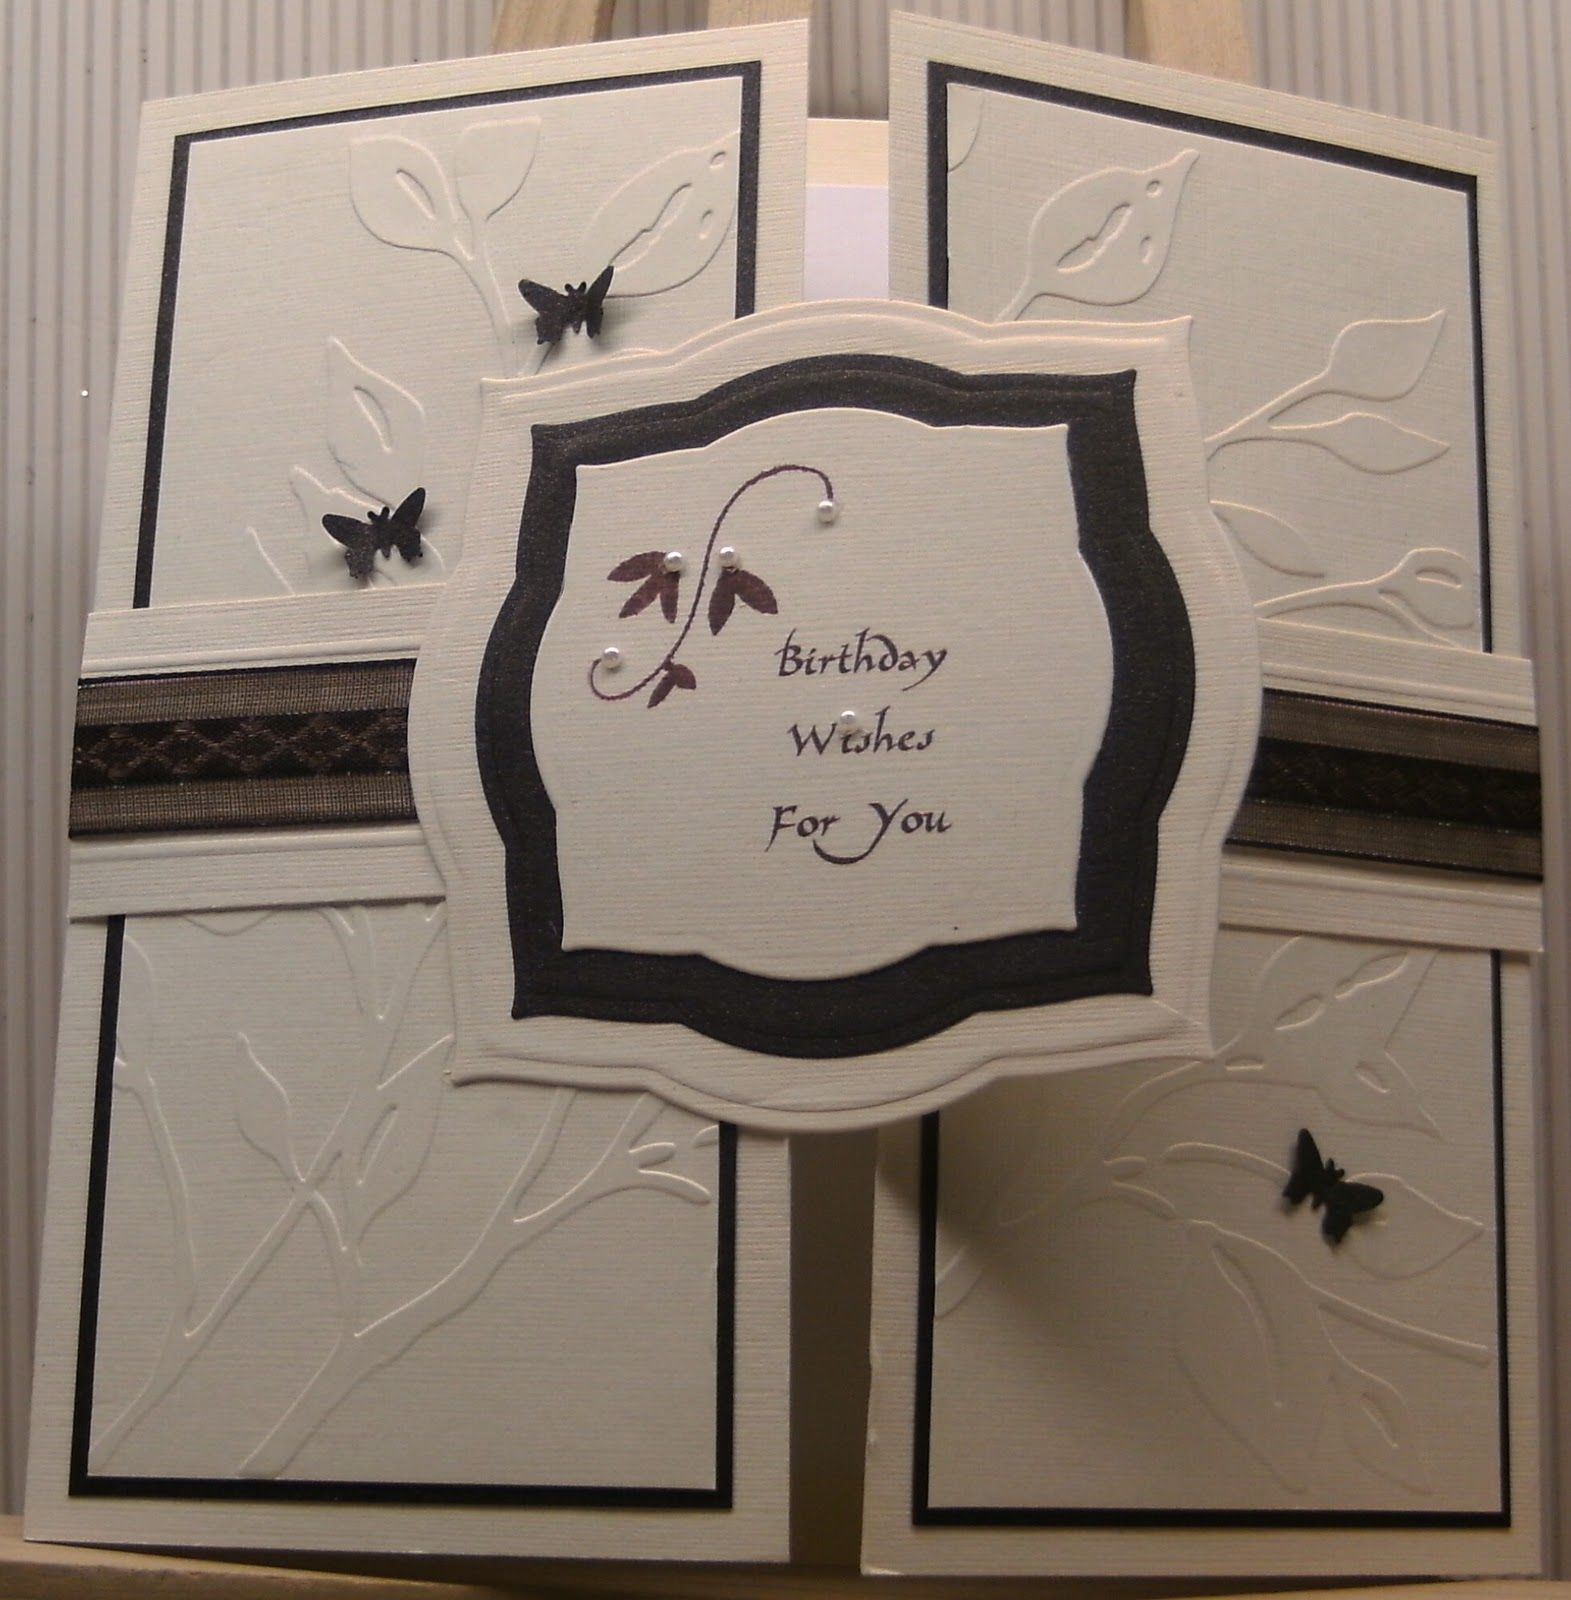 MISSY G DESIGNS: Card Making Class - Week5 - Joyfold and Gatefold cards......... Inspiration for the bday invite... do peeps on inside left and right flaps. Do embossing of webs on outer two panels